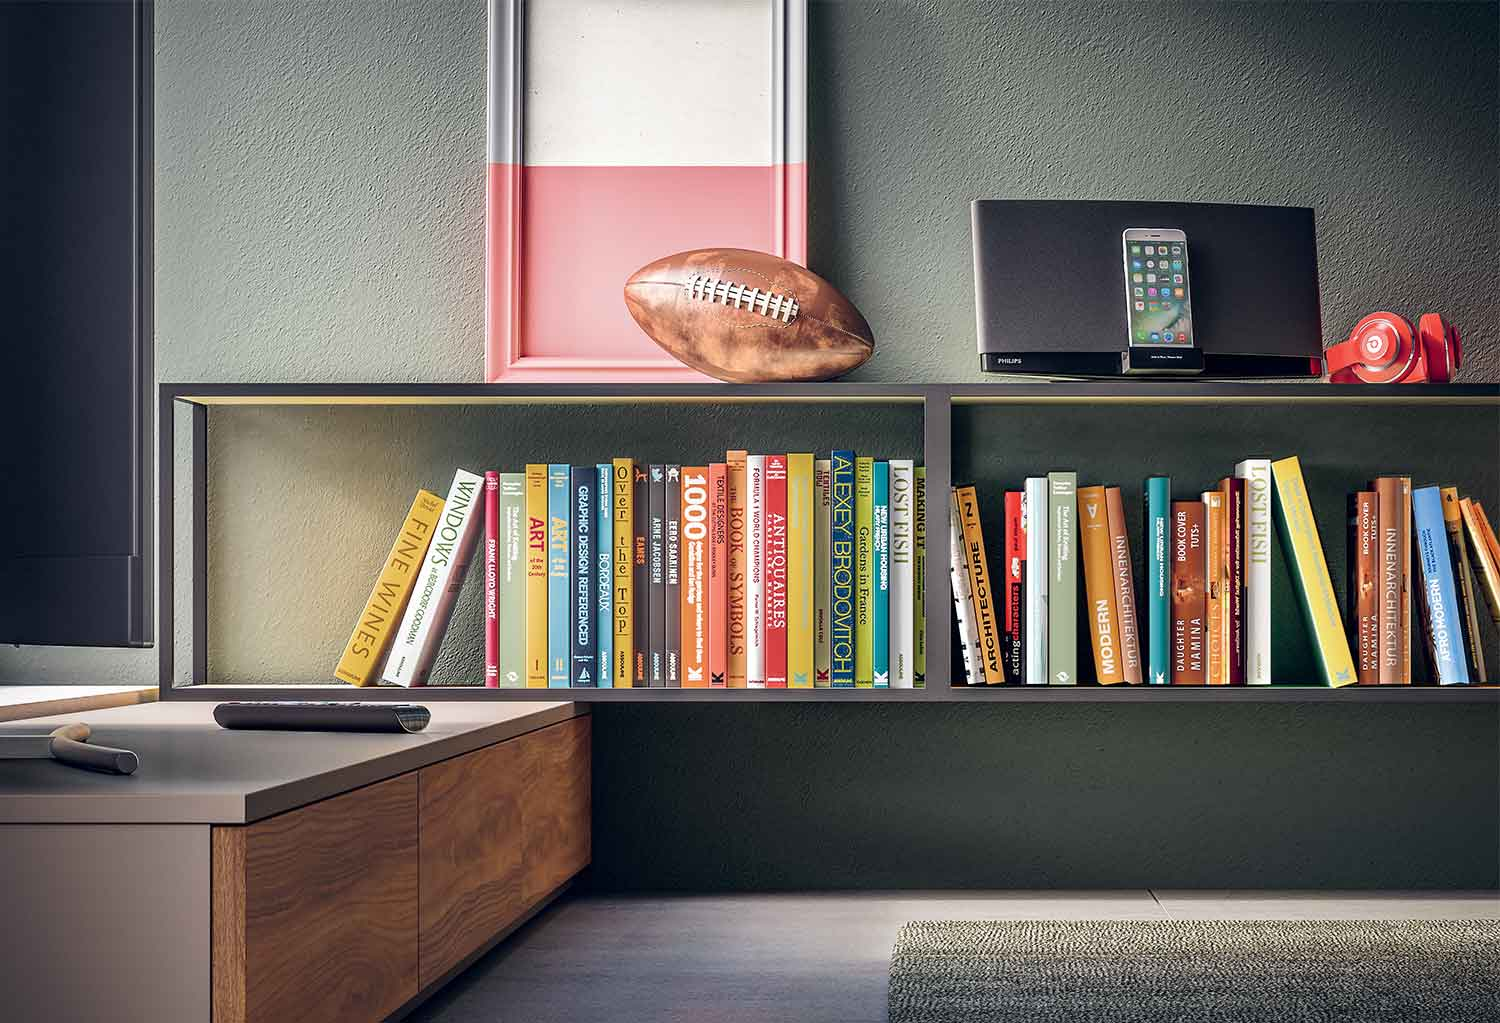 Metal frame shelving can be used as book holders